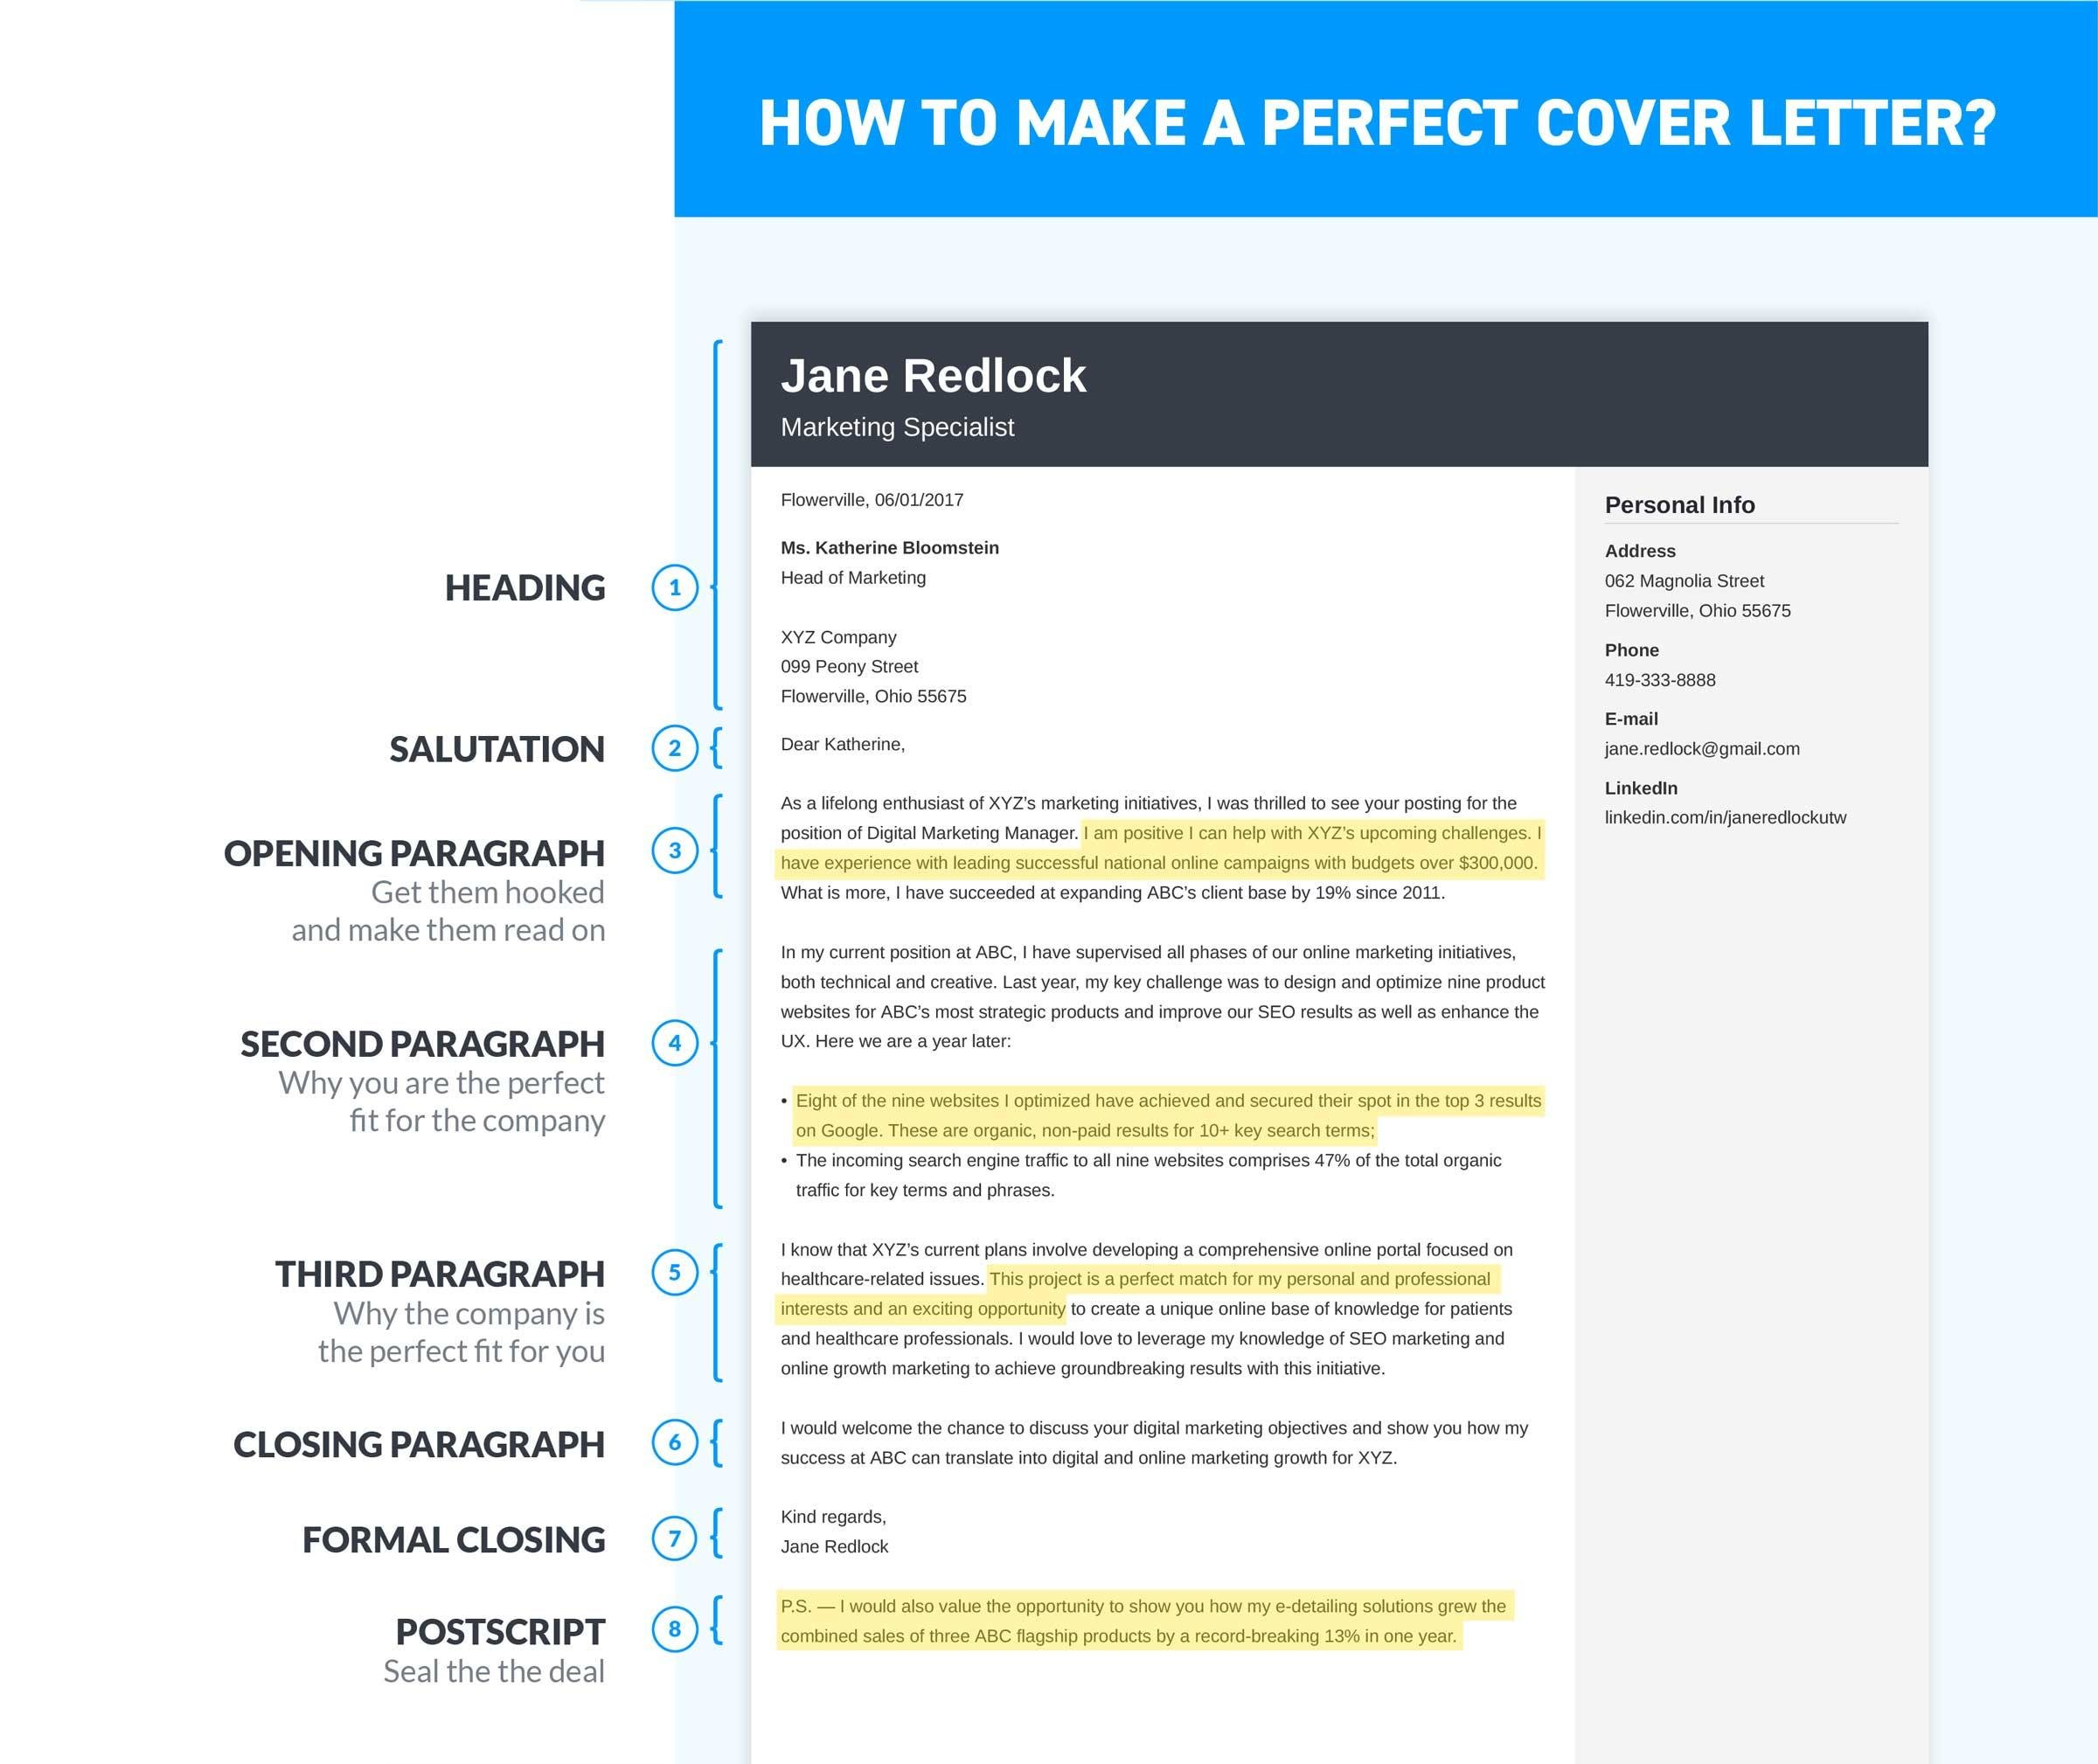 How To Write A Cover Letter In 8 Simple Steps 12 Examples - Creating-a-resume-cover-letter